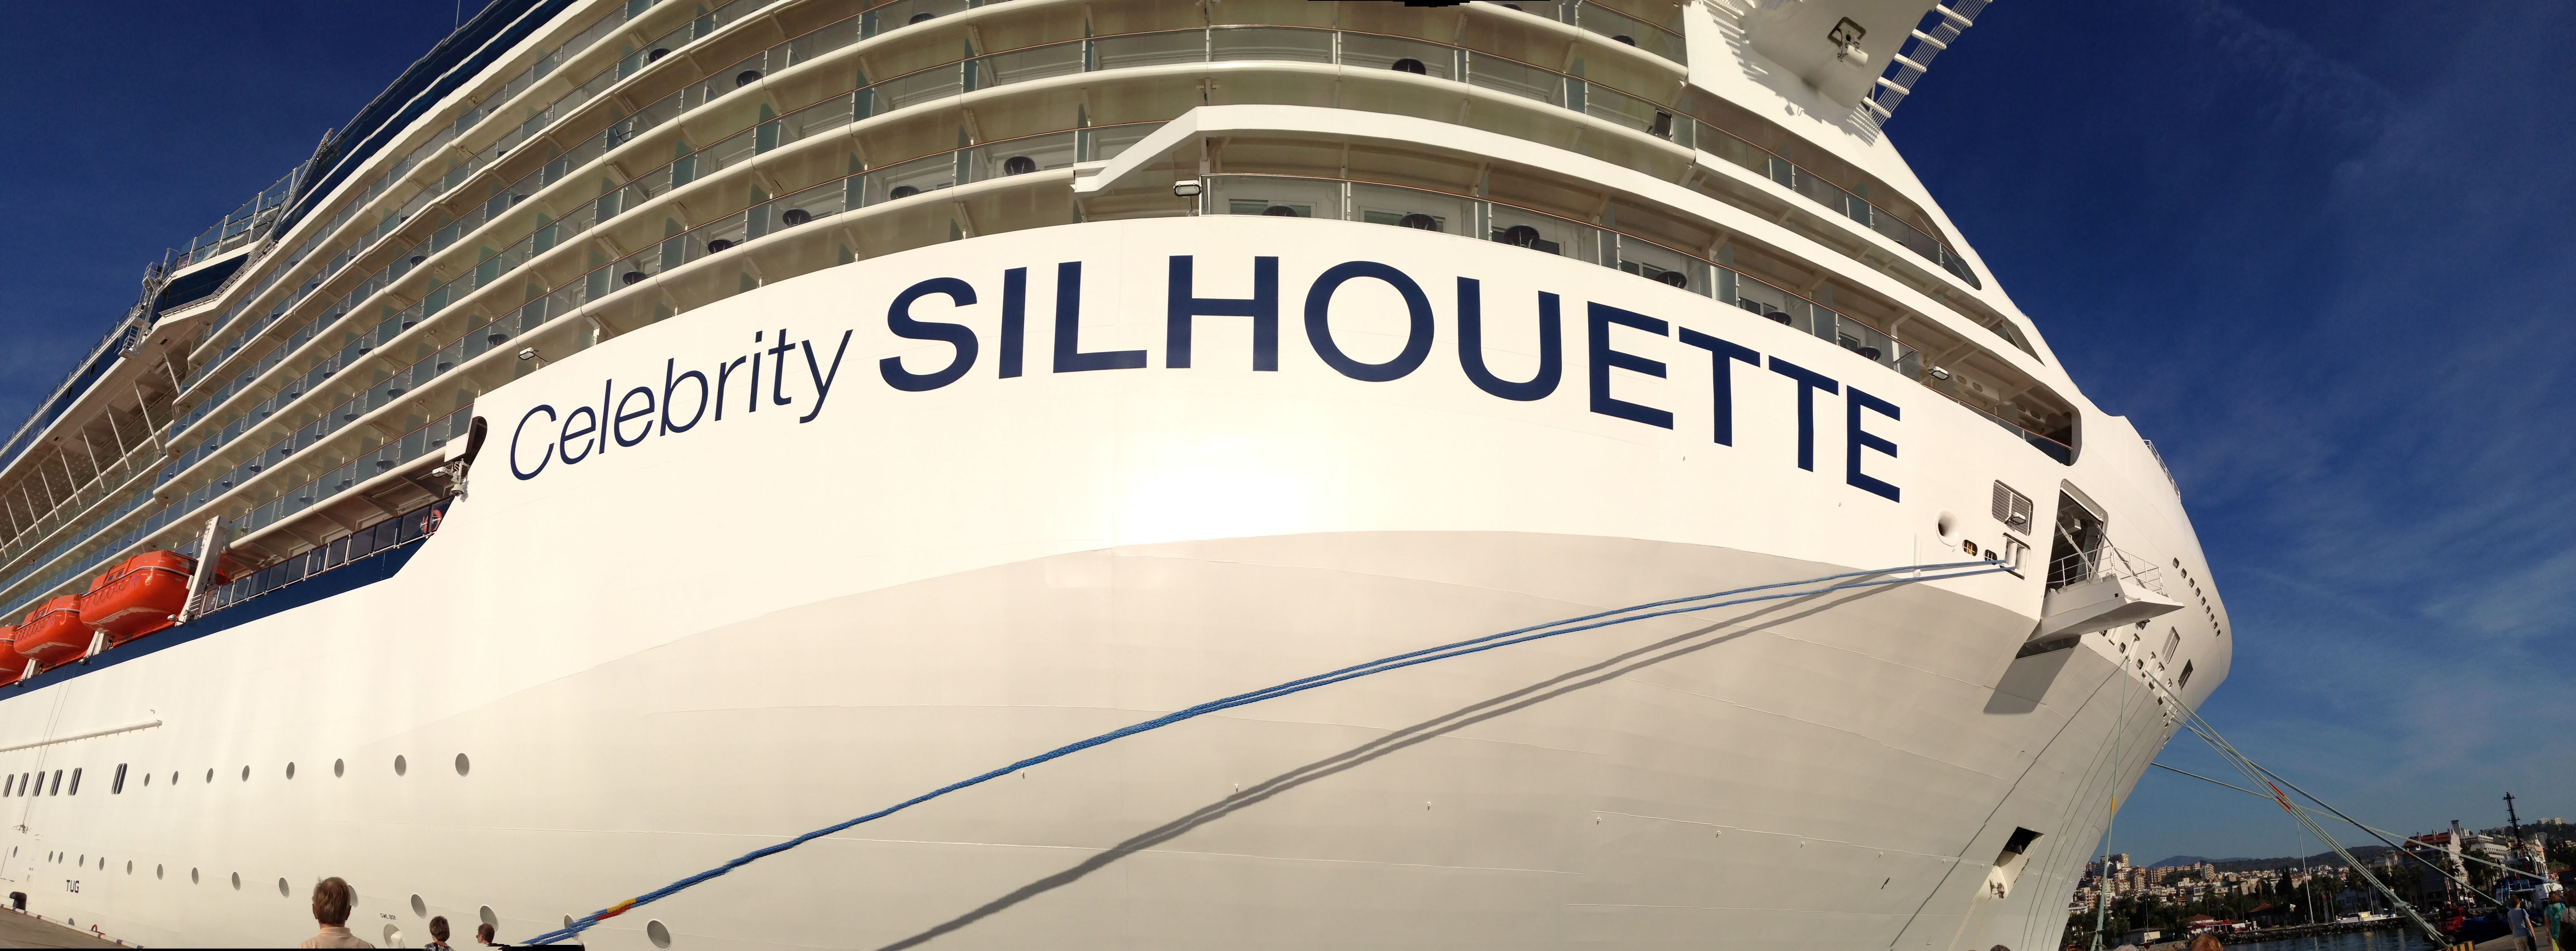 Celebrity Silhouette Cruise Ship Review | travel vlog ...